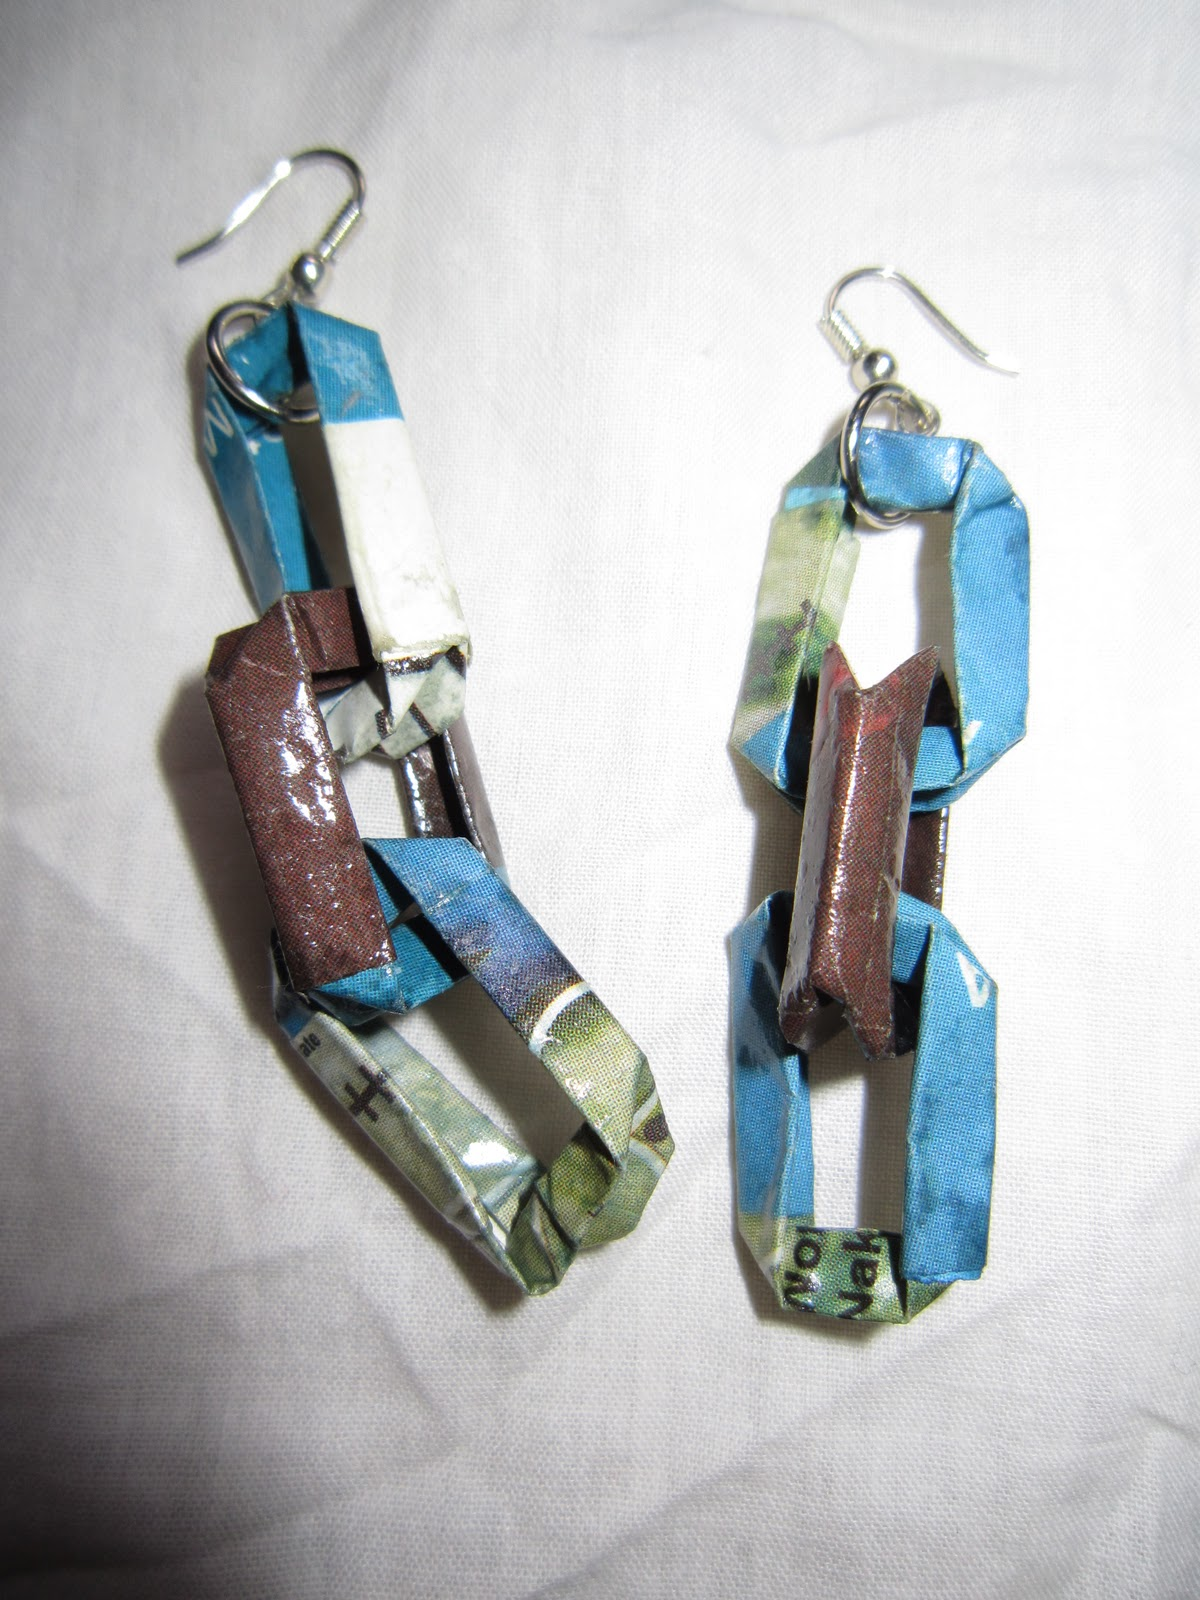 Fah creations handmade paper jewelry for Handmade paper creations